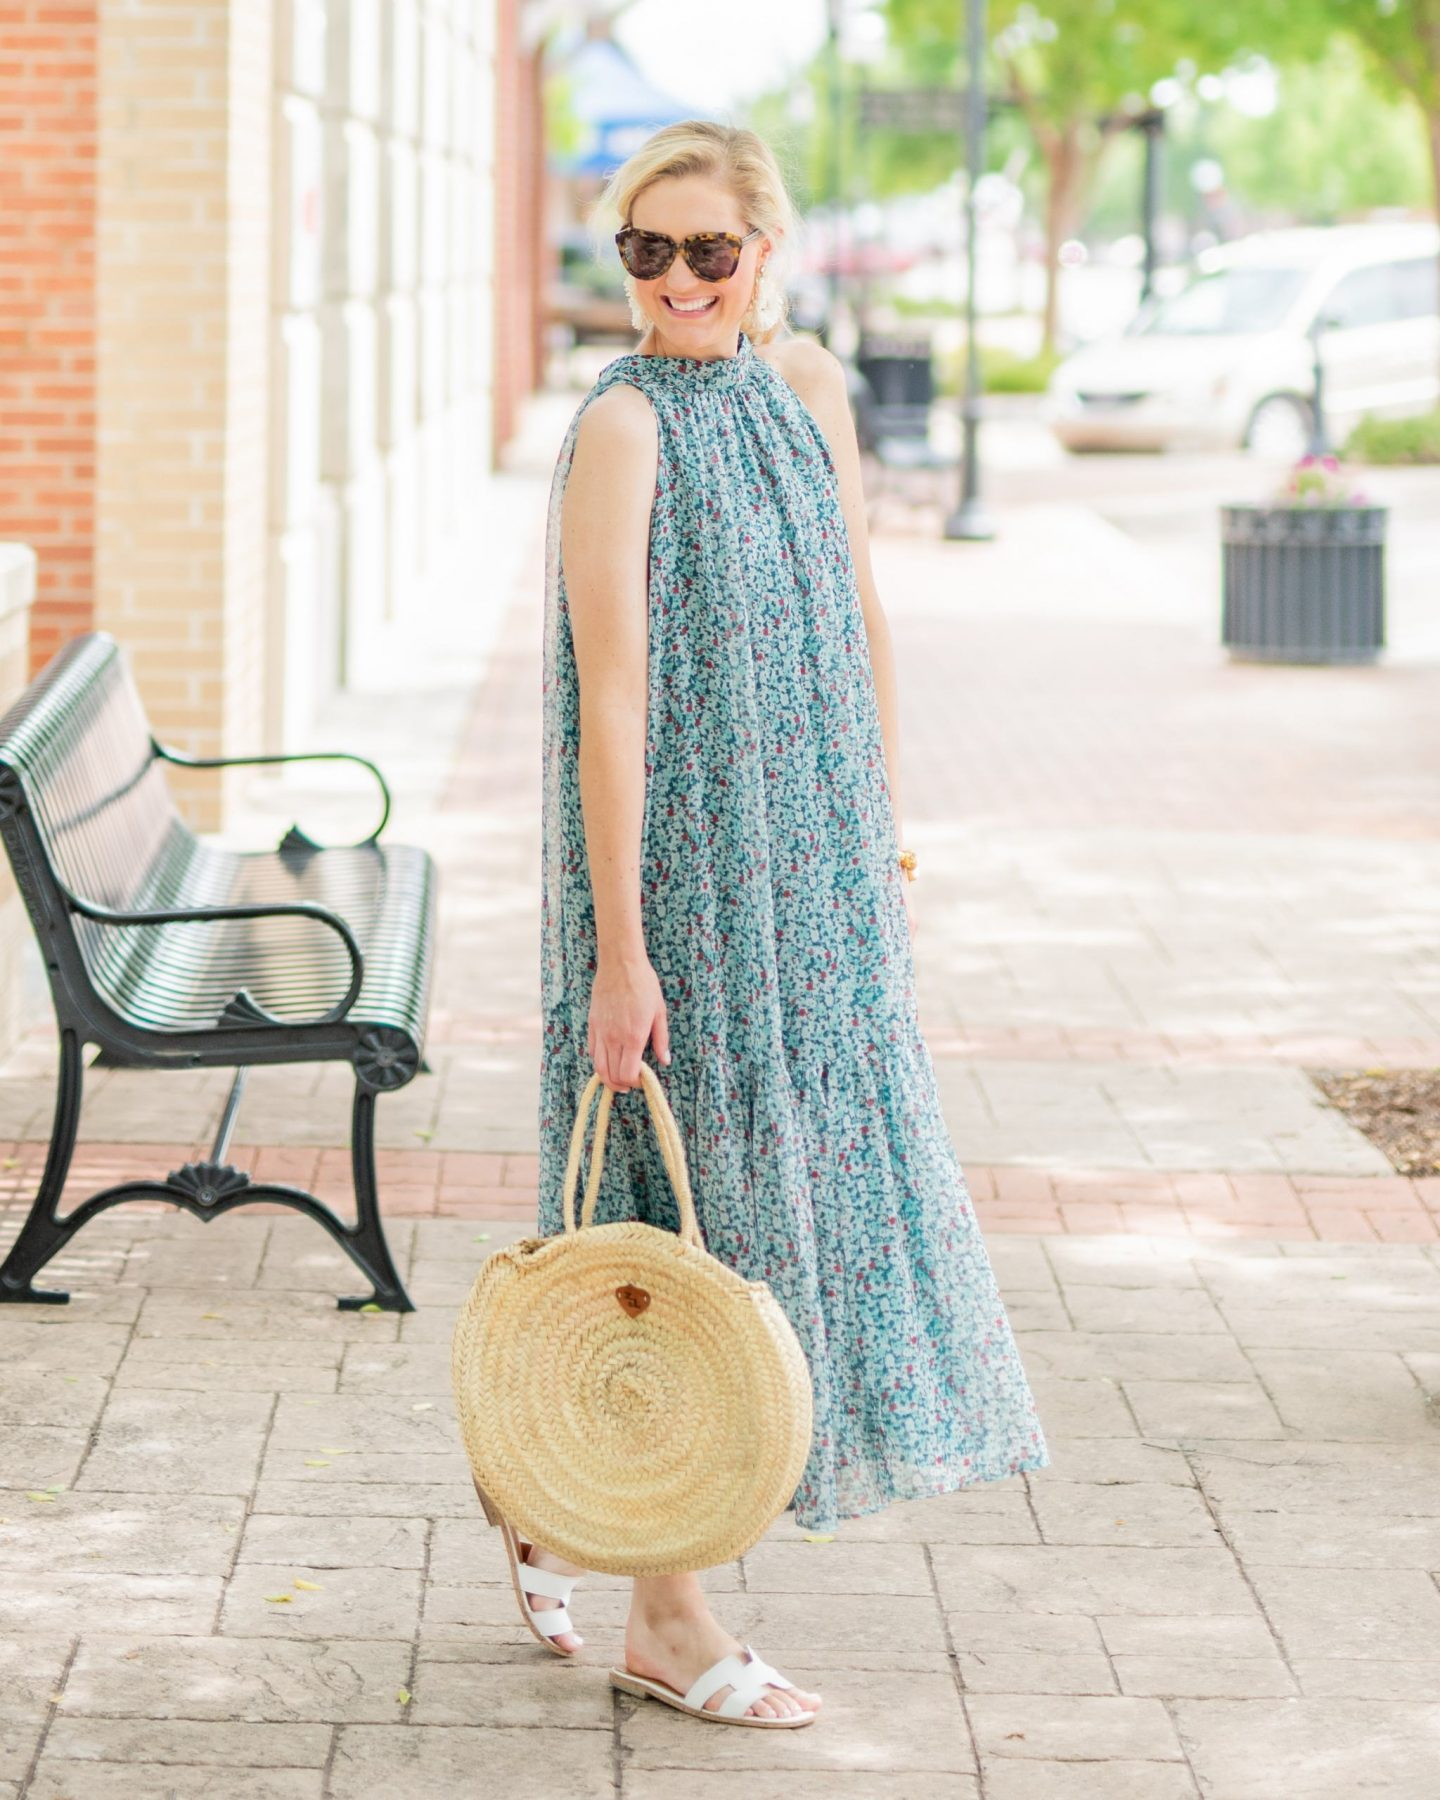 FLoral maxi dress with wicker bag